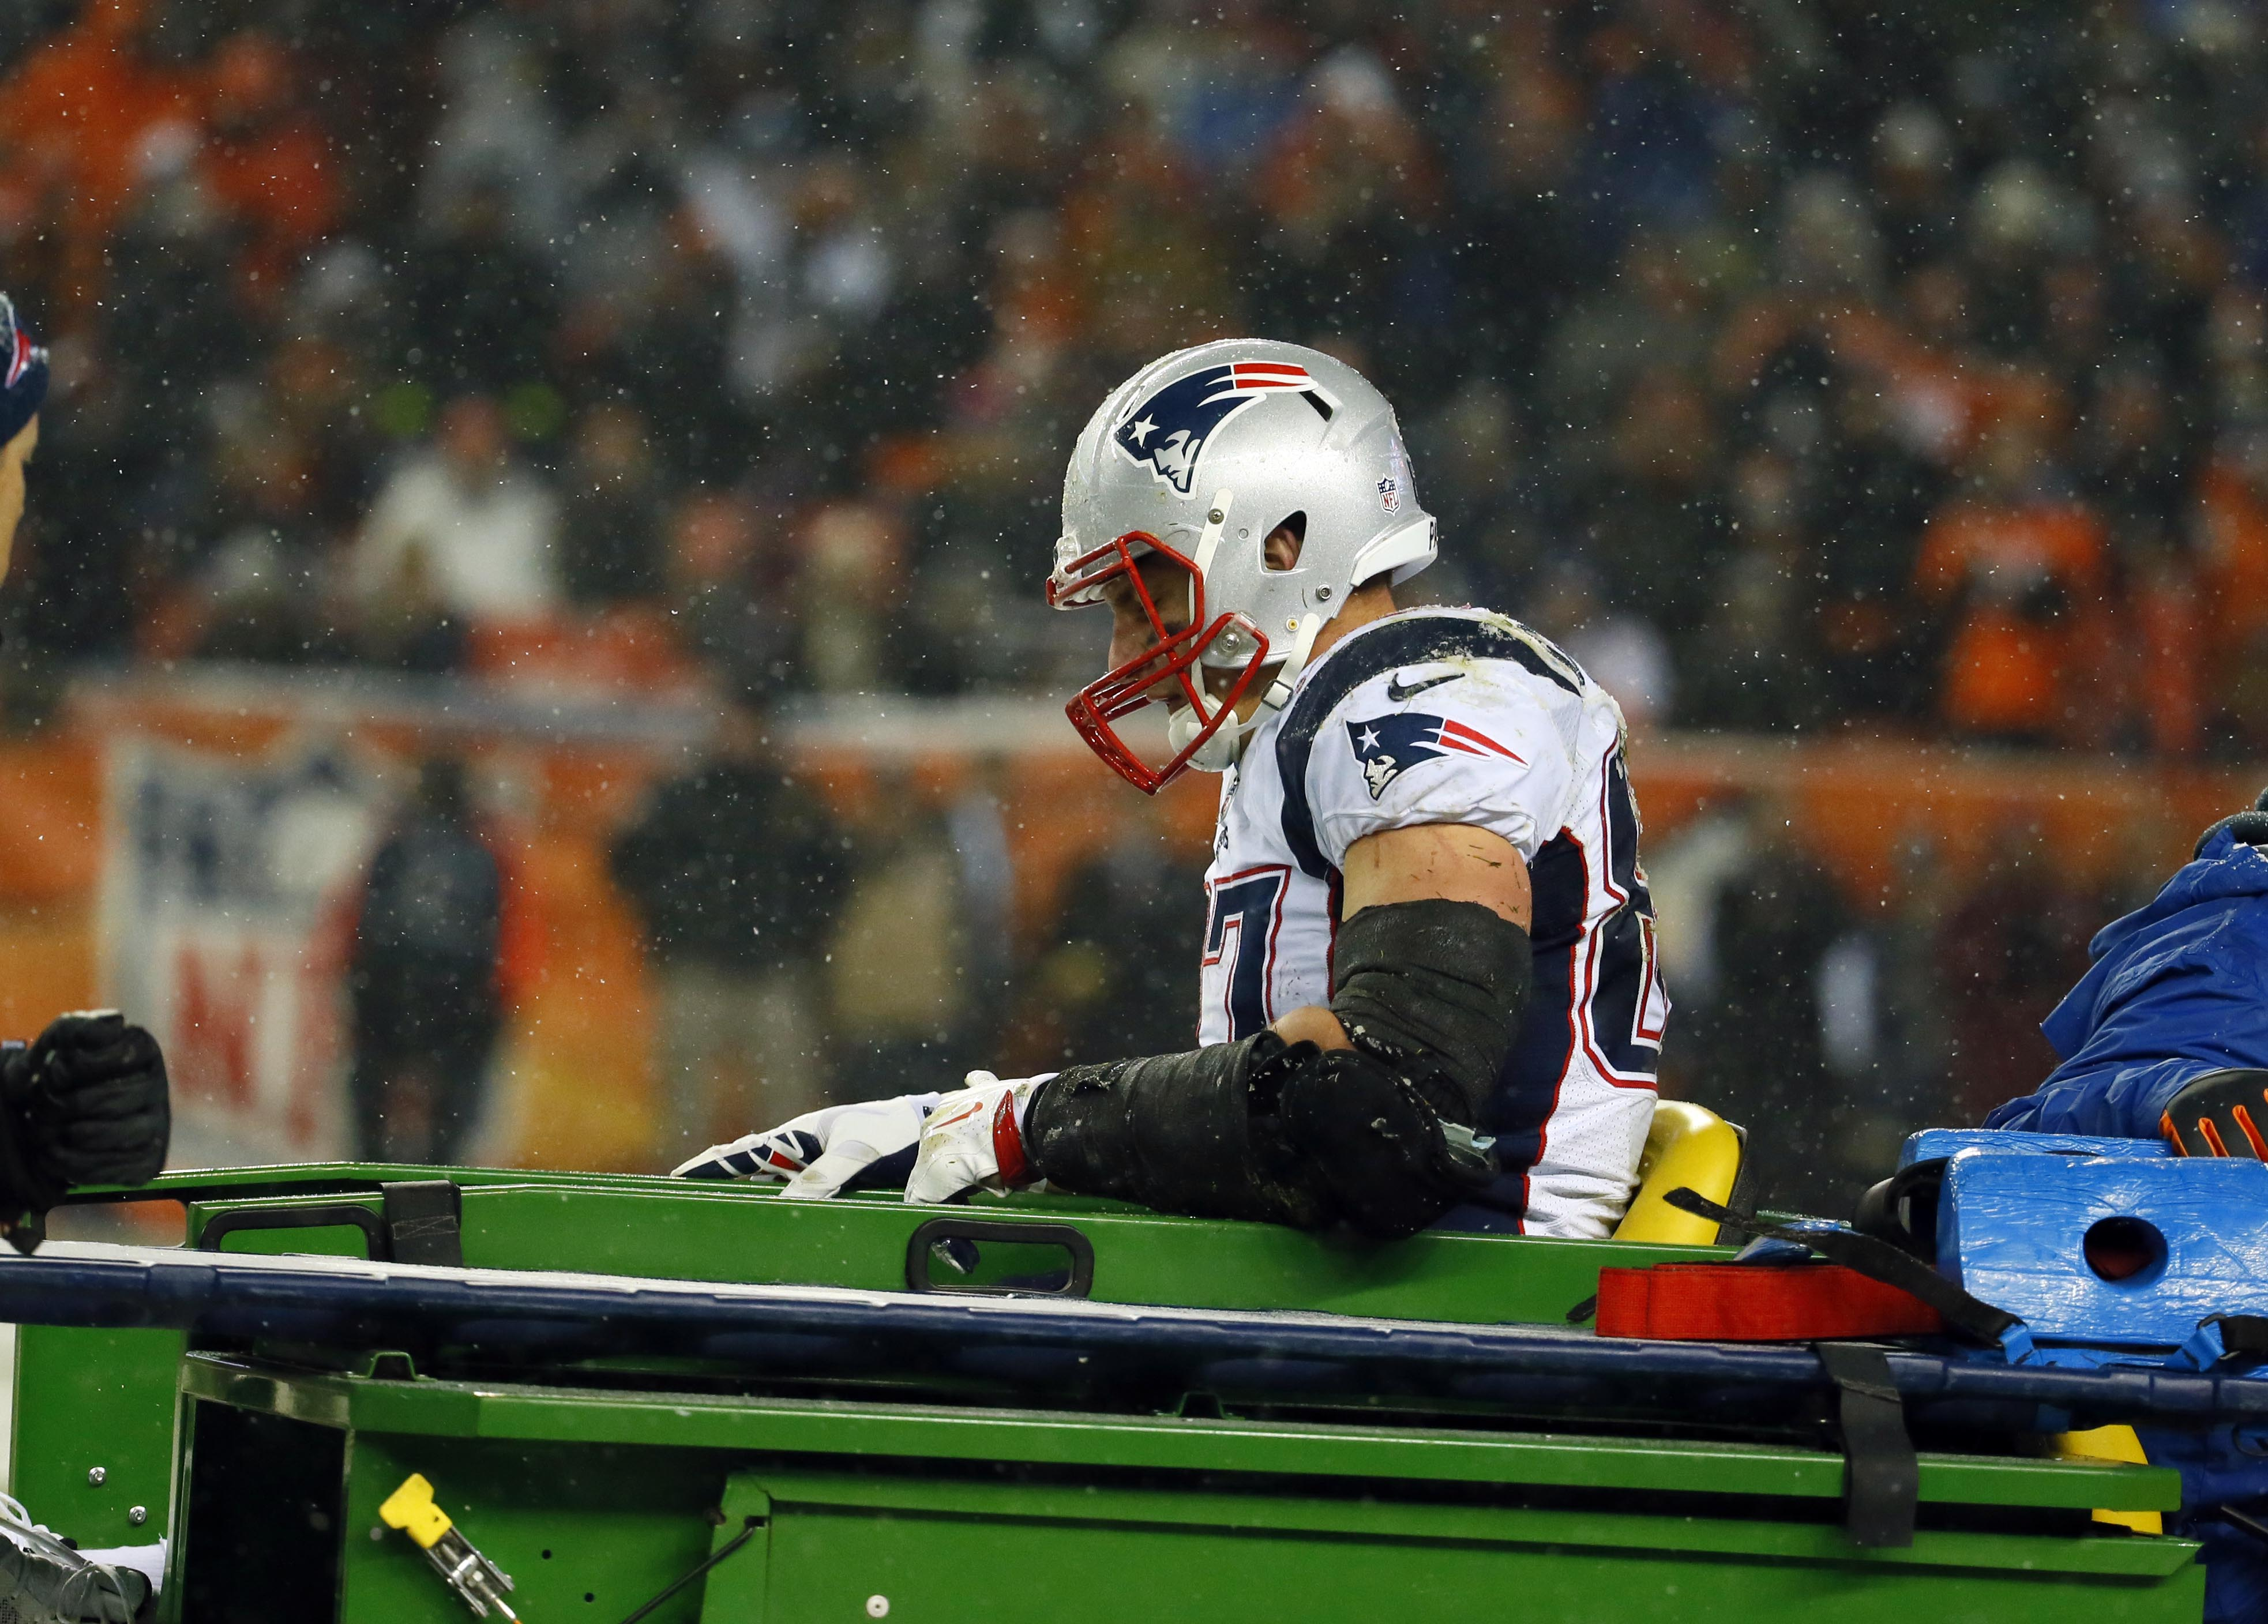 FILE - In this Nov. 29, 2015, file photo, New England Patriots tight end Rob Gronkowski is carted off the field after being injured against the Denver Broncos during the second half of an NFL football game in Denver. In case you missed it in Week 12 of th